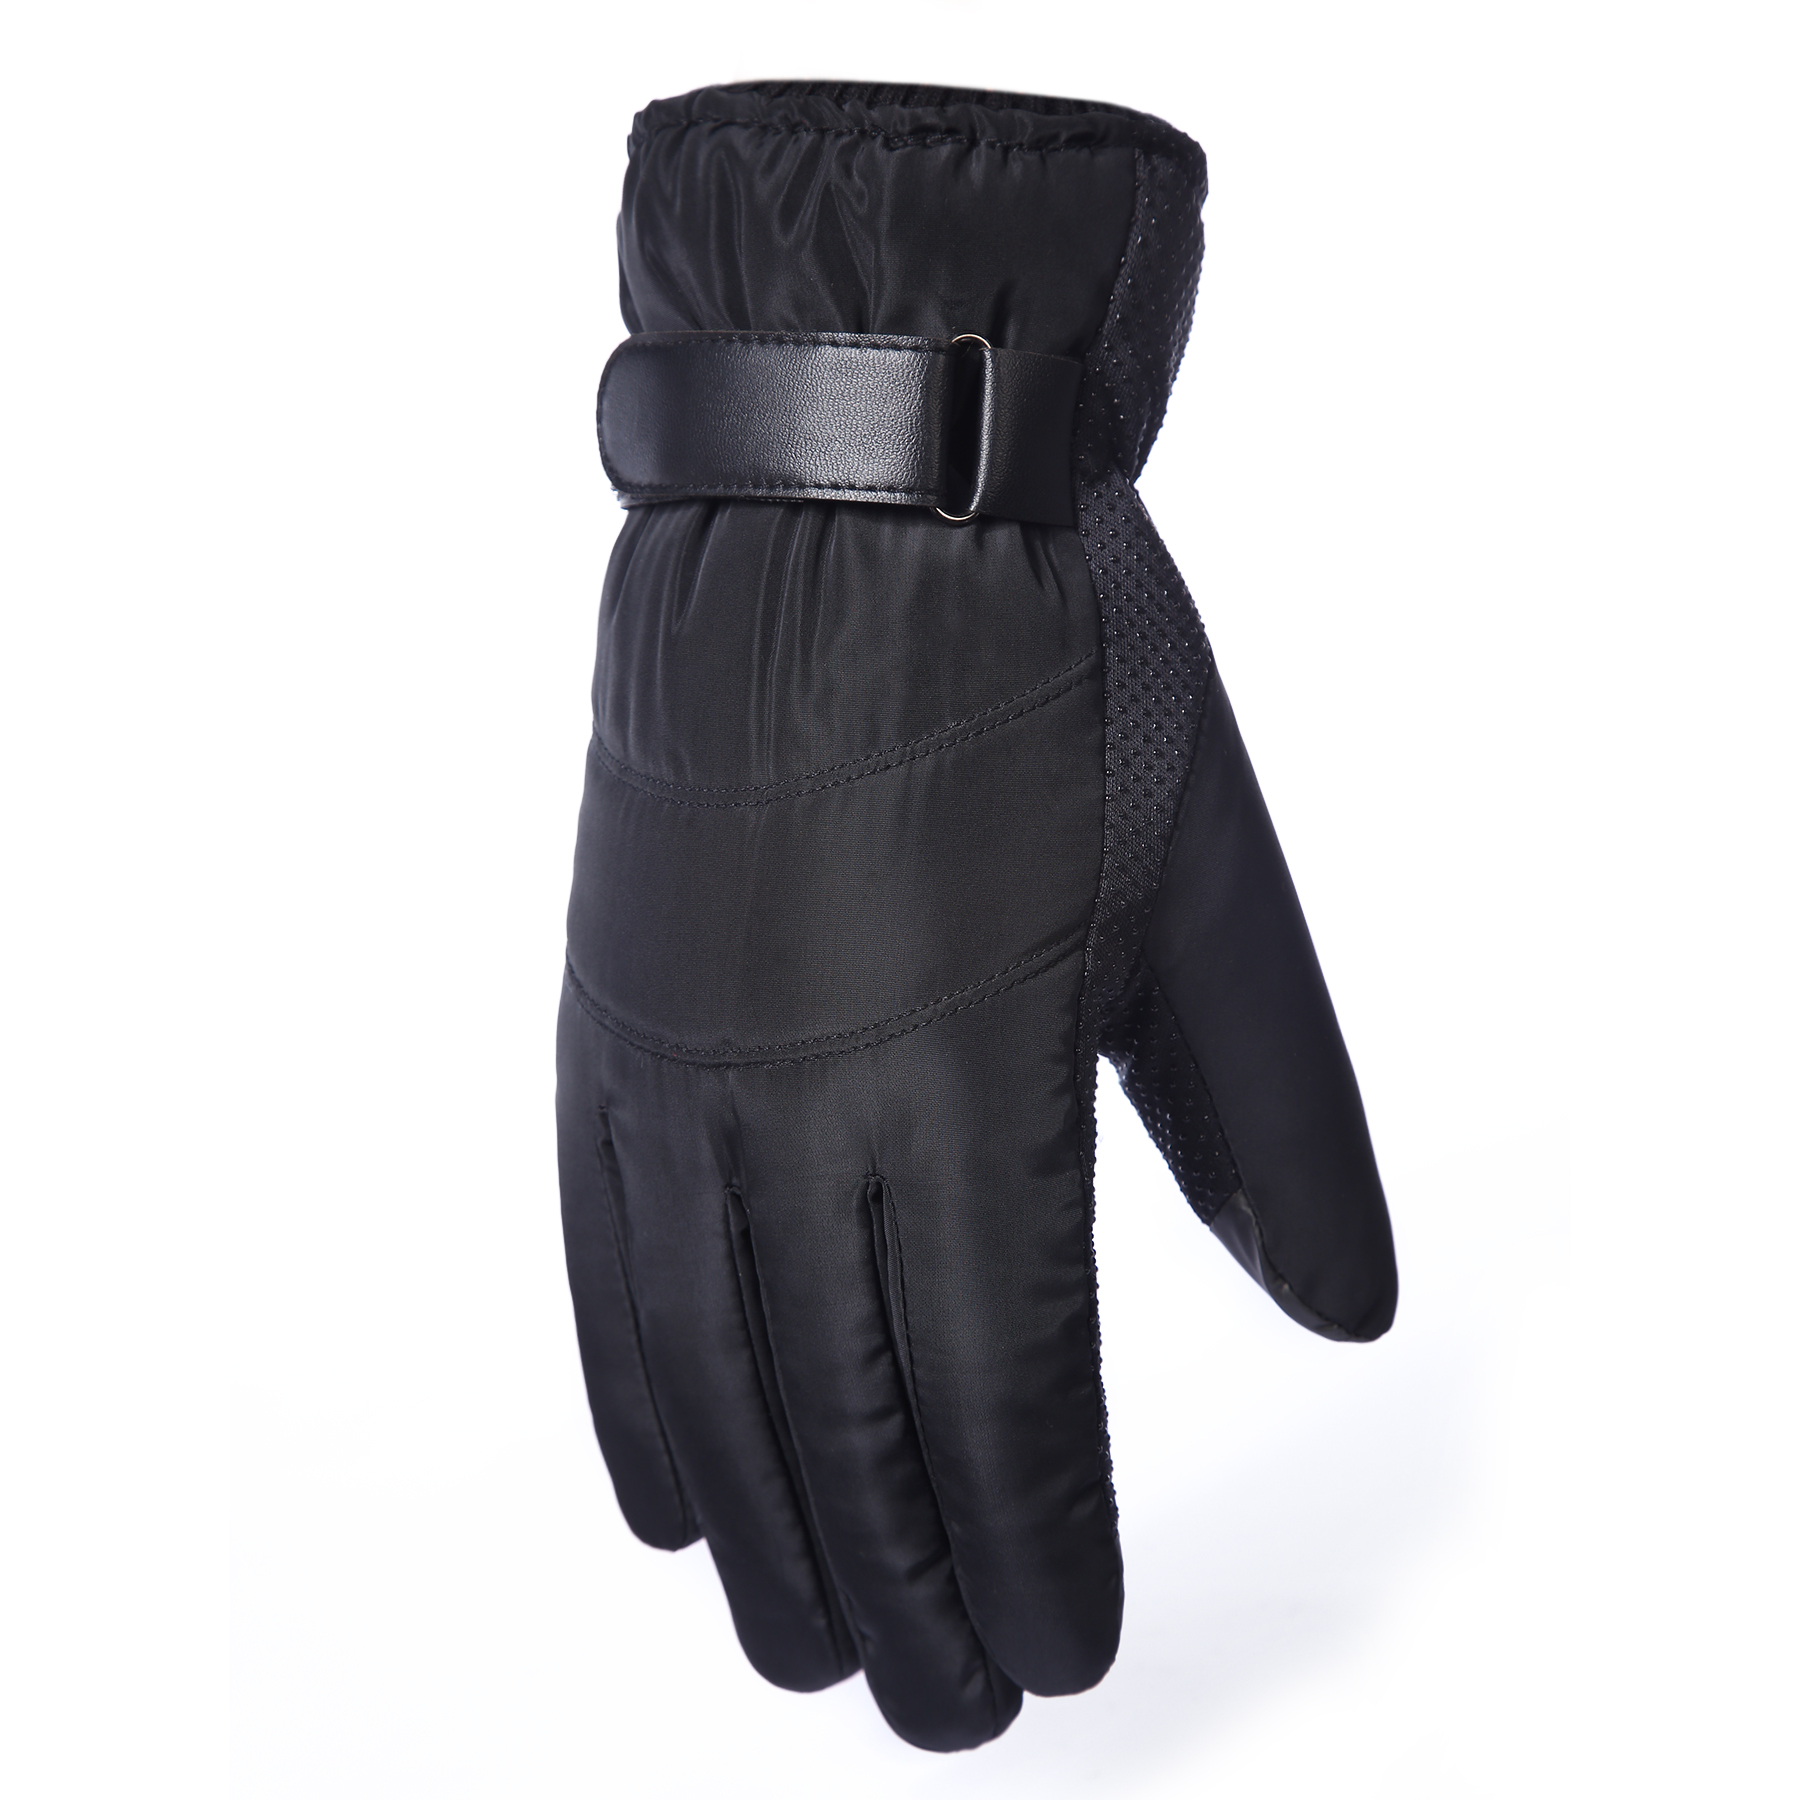 Skiing gloves high quality unisex fleece windproof gloves touchscreen gloves for smartphone cold weather waterproof gloves